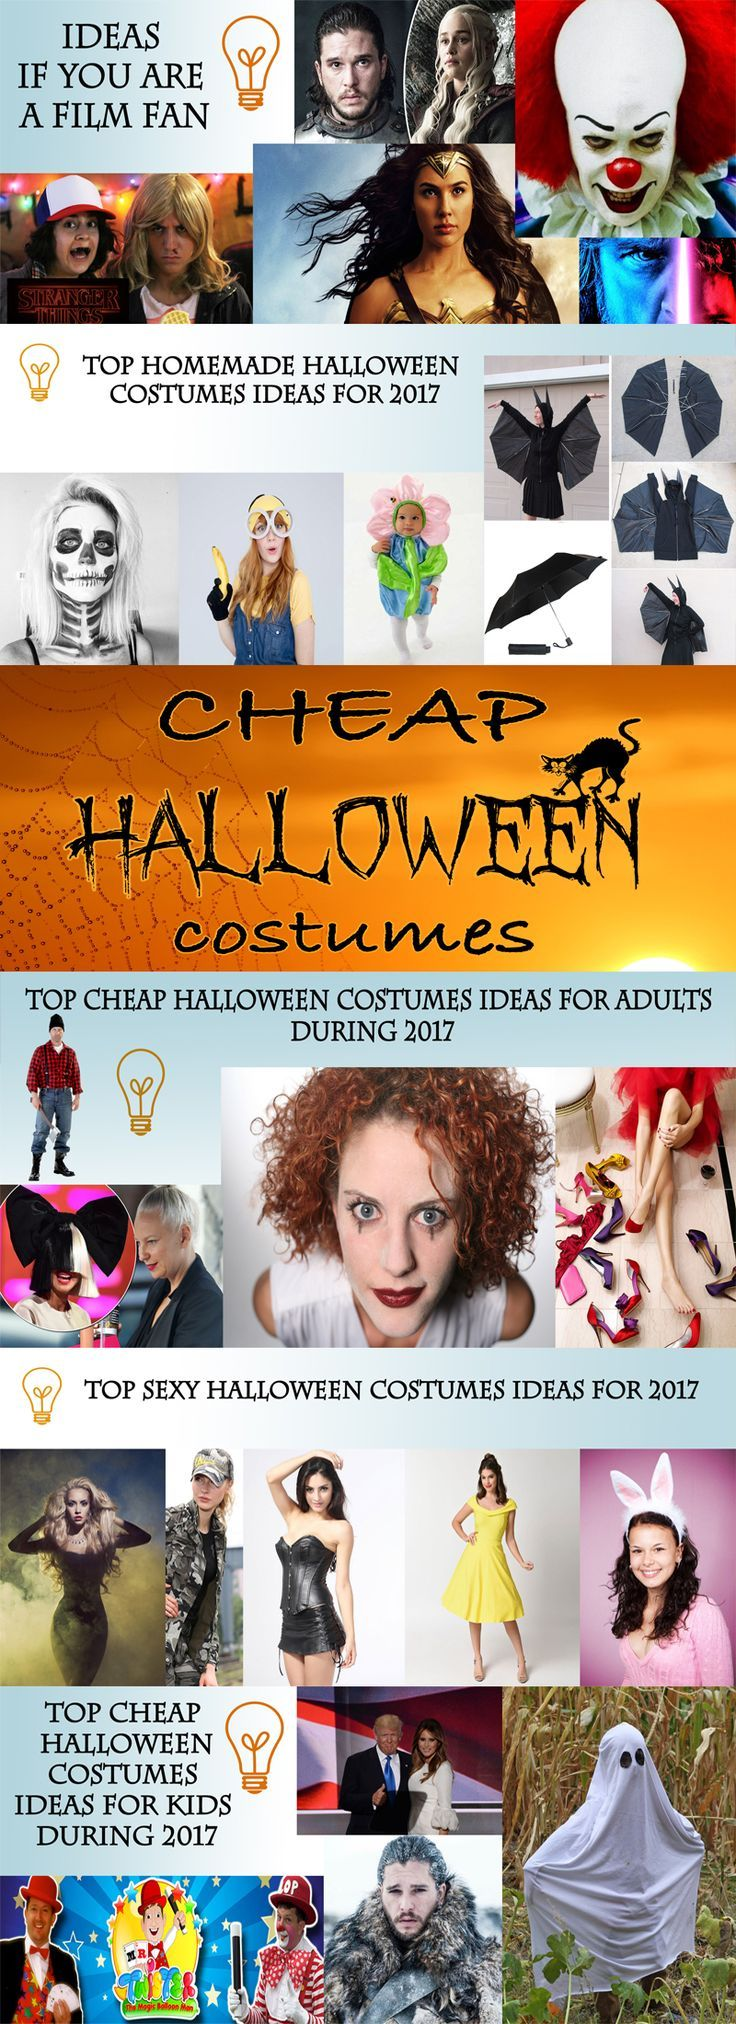 Halloween costumes are the primary symbols of the celebration on the 31st of October. Check out the best cheap Halloween costumes ideas for 2017